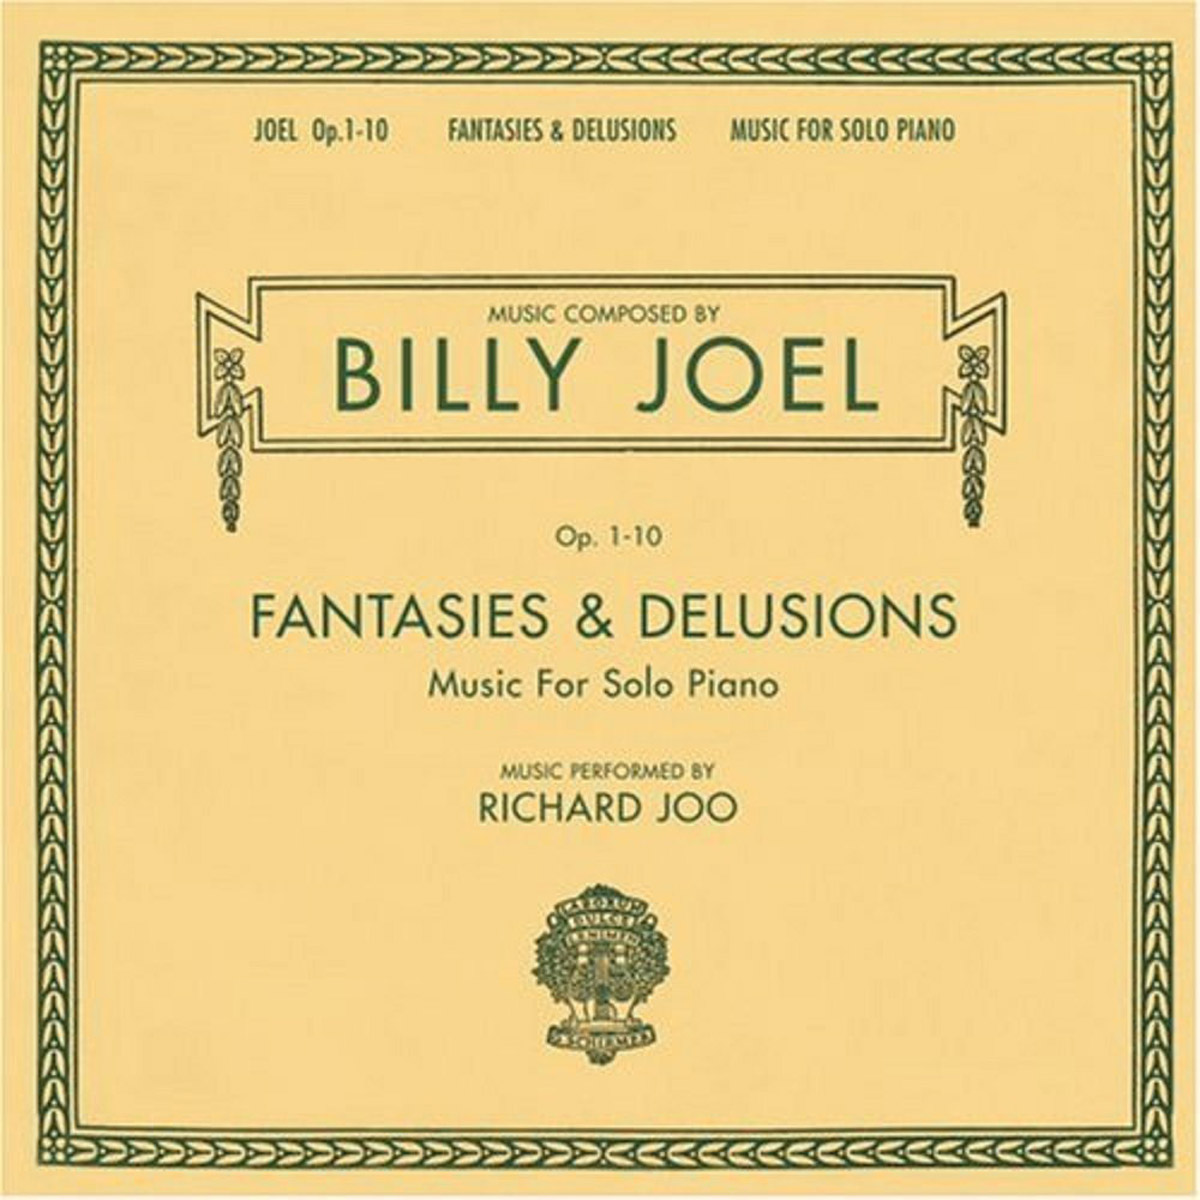 Billy Joel - Opus 1-10 Fantasies & Delusions - Music For Solo Piano